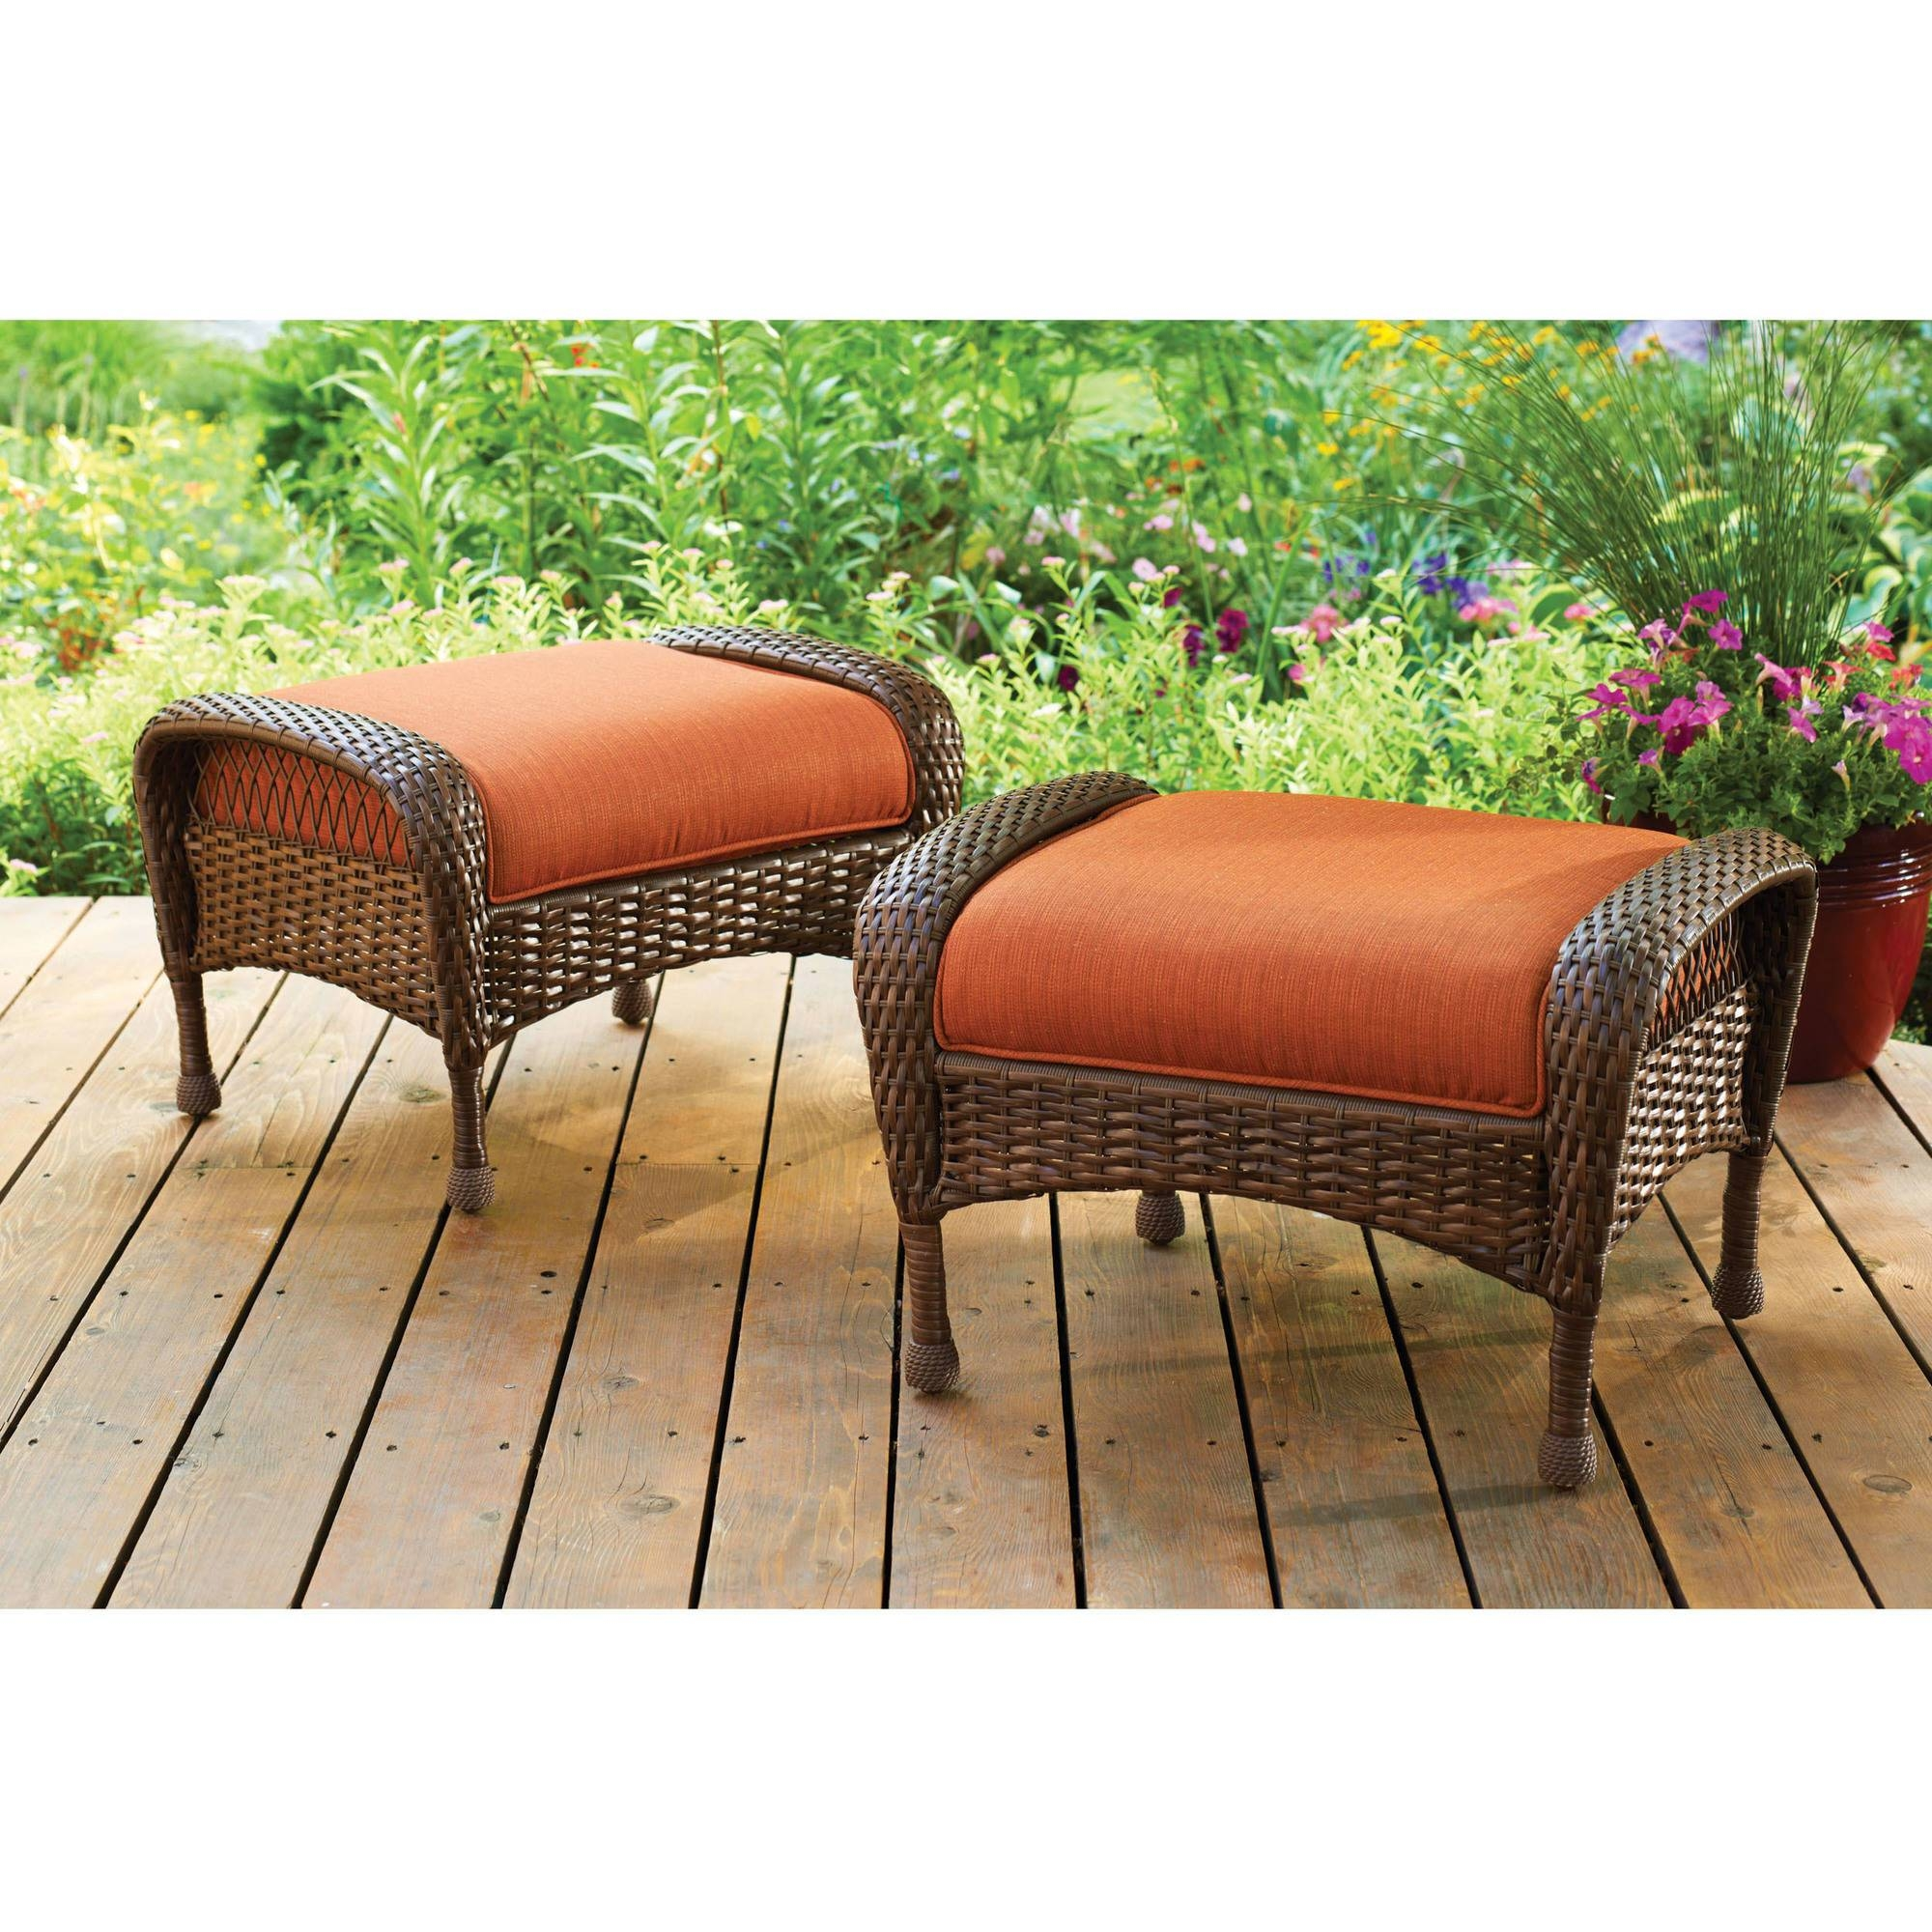 Patio Furniture - Walmart pertaining to Outdoor Sofa Chairs (Image 23 of 30)